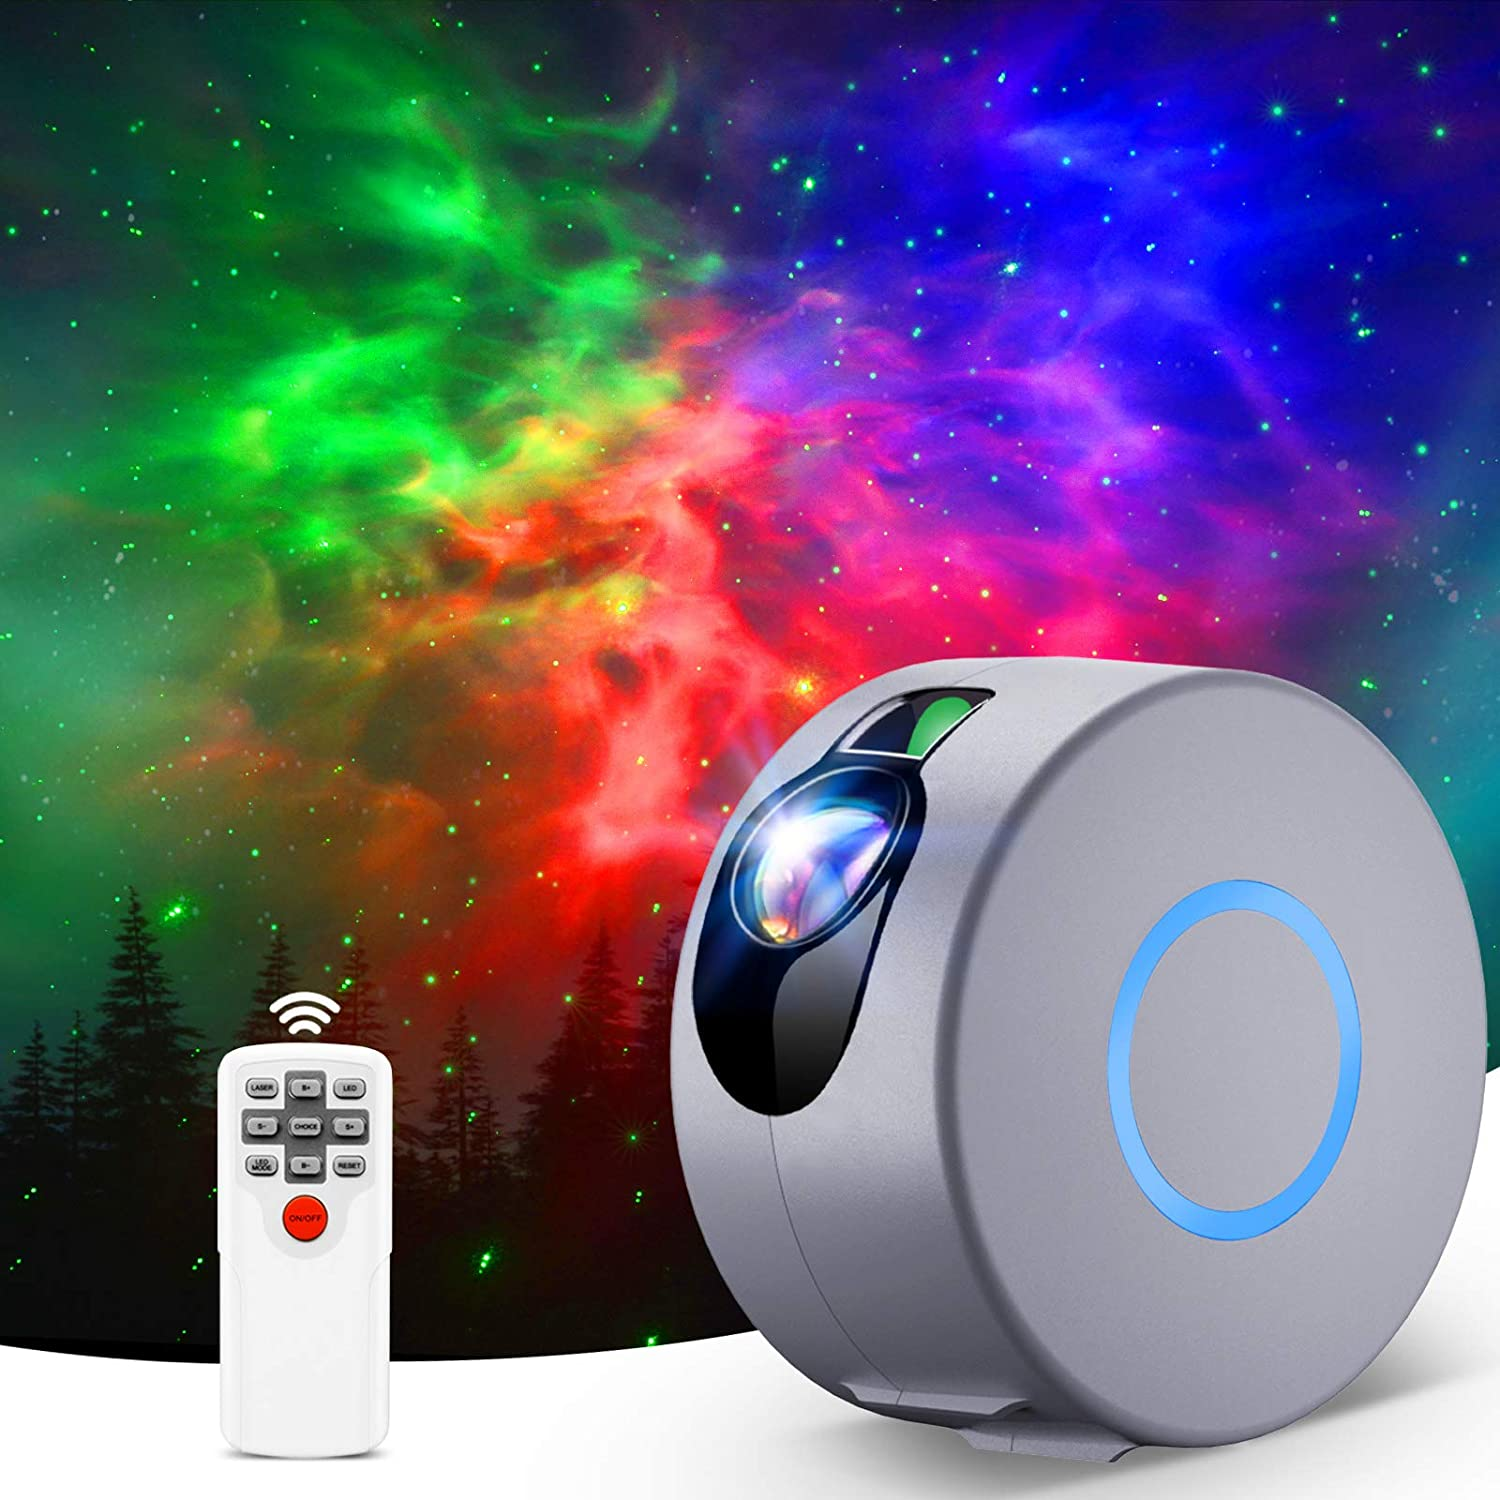 Star Projector Galaxy Projector Light with LED Nebula Cloud Night Light Projector with Remote Control for Bedroom